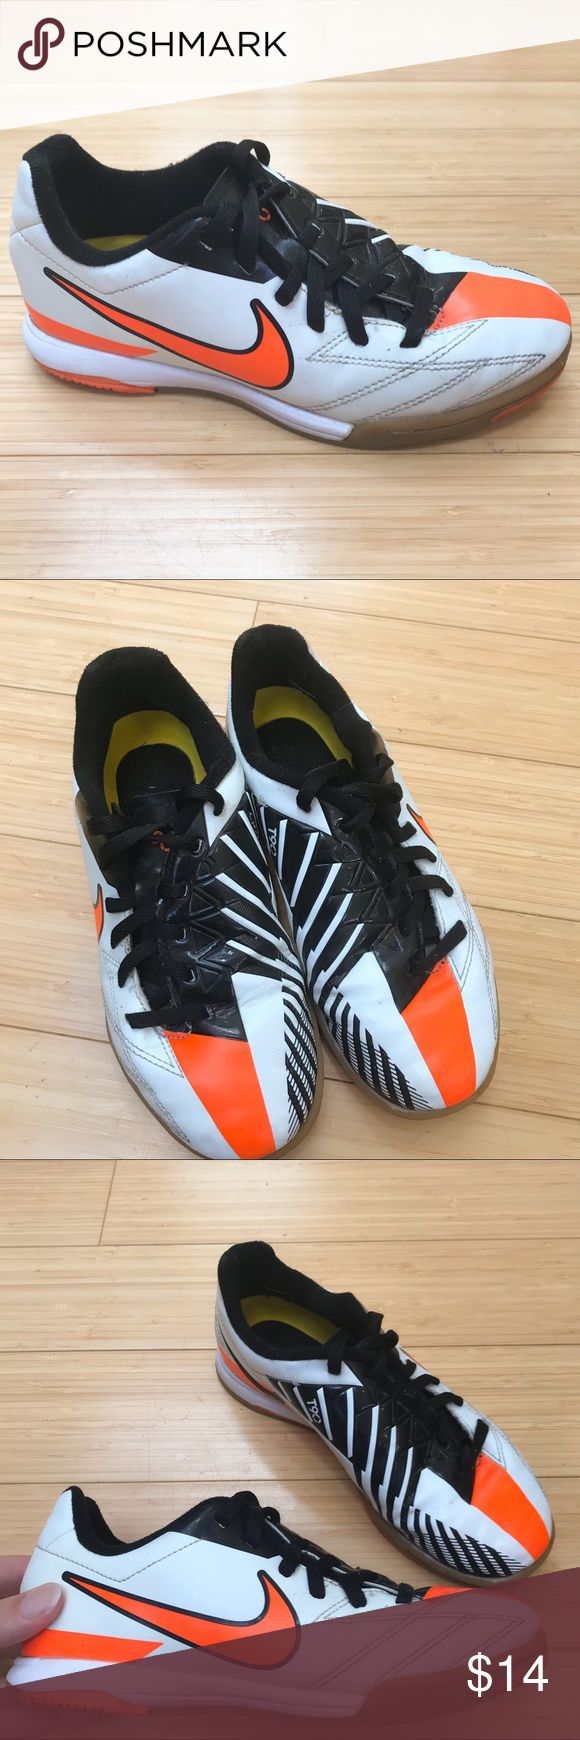 NIKE indoor soccer shoes, 2 2Y youth. Nike indoor soccer shoes, size youth 2, 2Y. Boys or girls. Used for one season, still very good condition, some very tiny pebbles in the soles, no real wear. Good for Futsal, futbal. Nike Shoes Sneakers